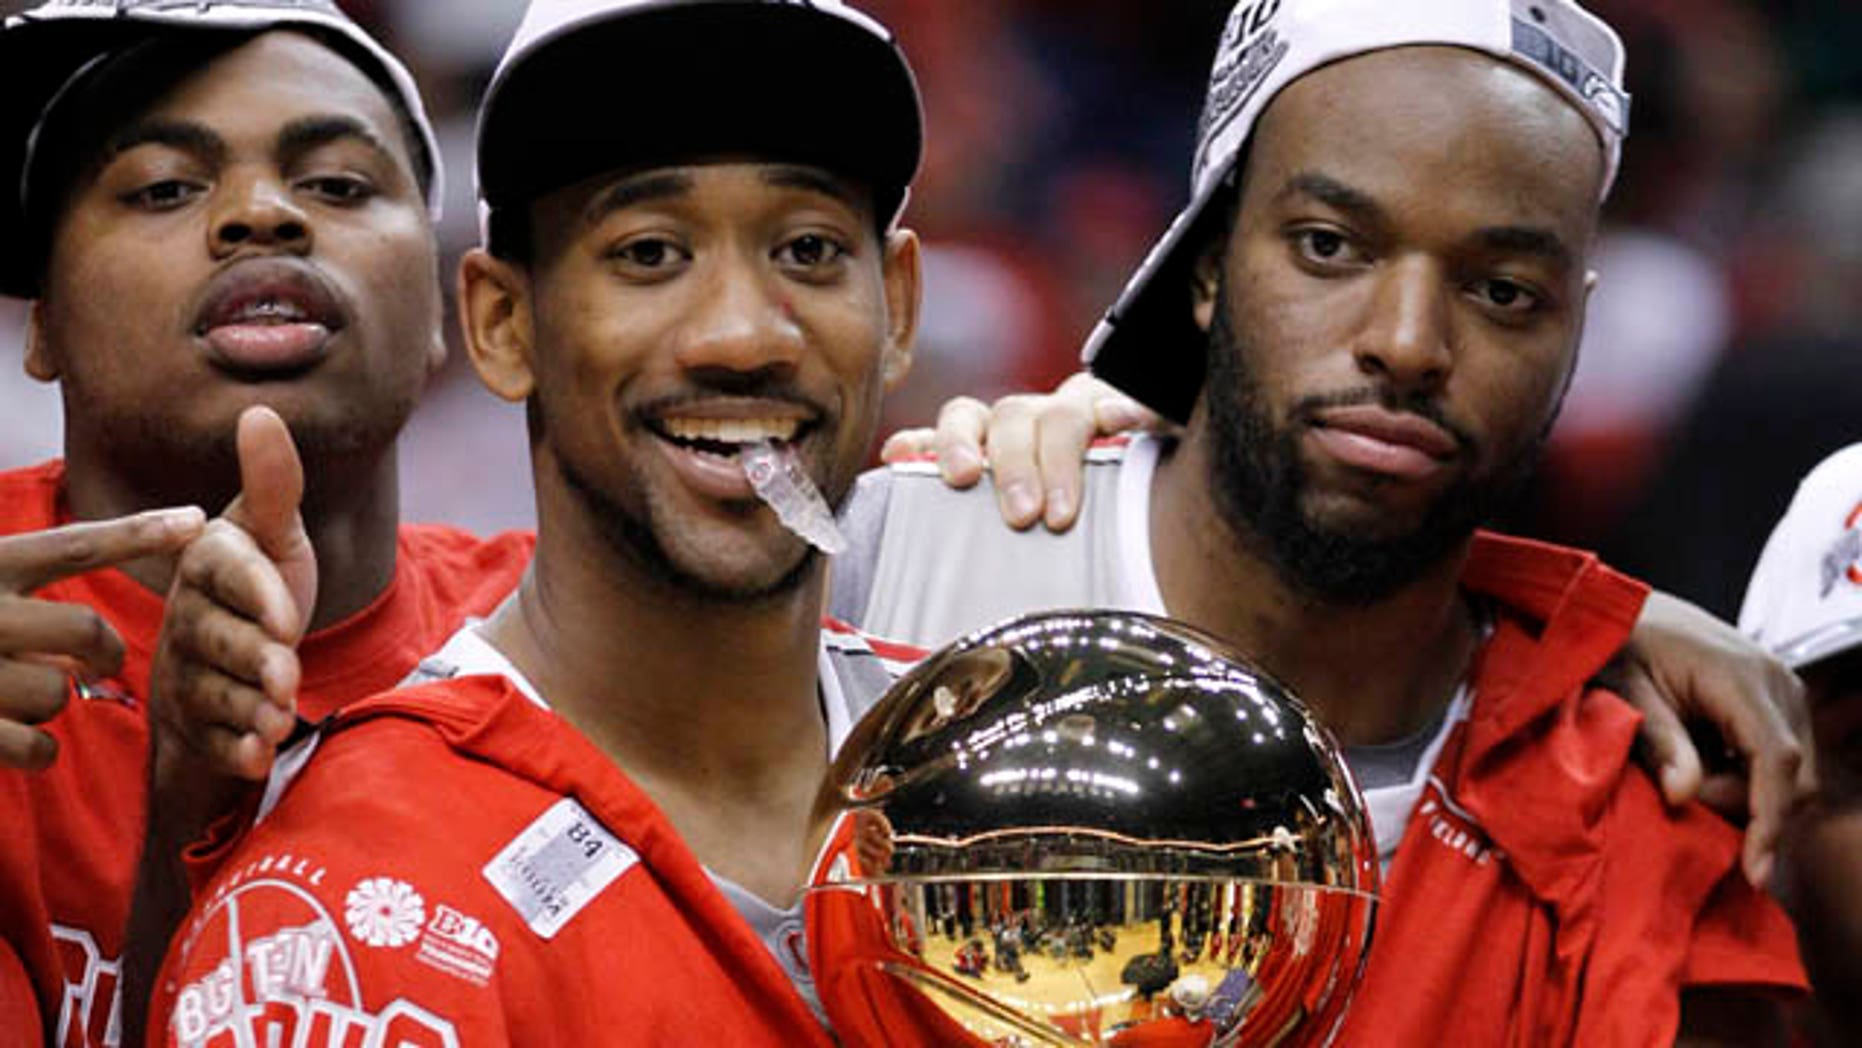 March 13: Ohio State forward Dallas Lauderdale, right, and David Lighty carry the championship trophy as Deshaun Thomas, left, looks on after Ohio State defeated Penn State 71-60 in an NCAA college basketball game in the championship of the Big Ten Conference tournament in Indianapolis. (AP)